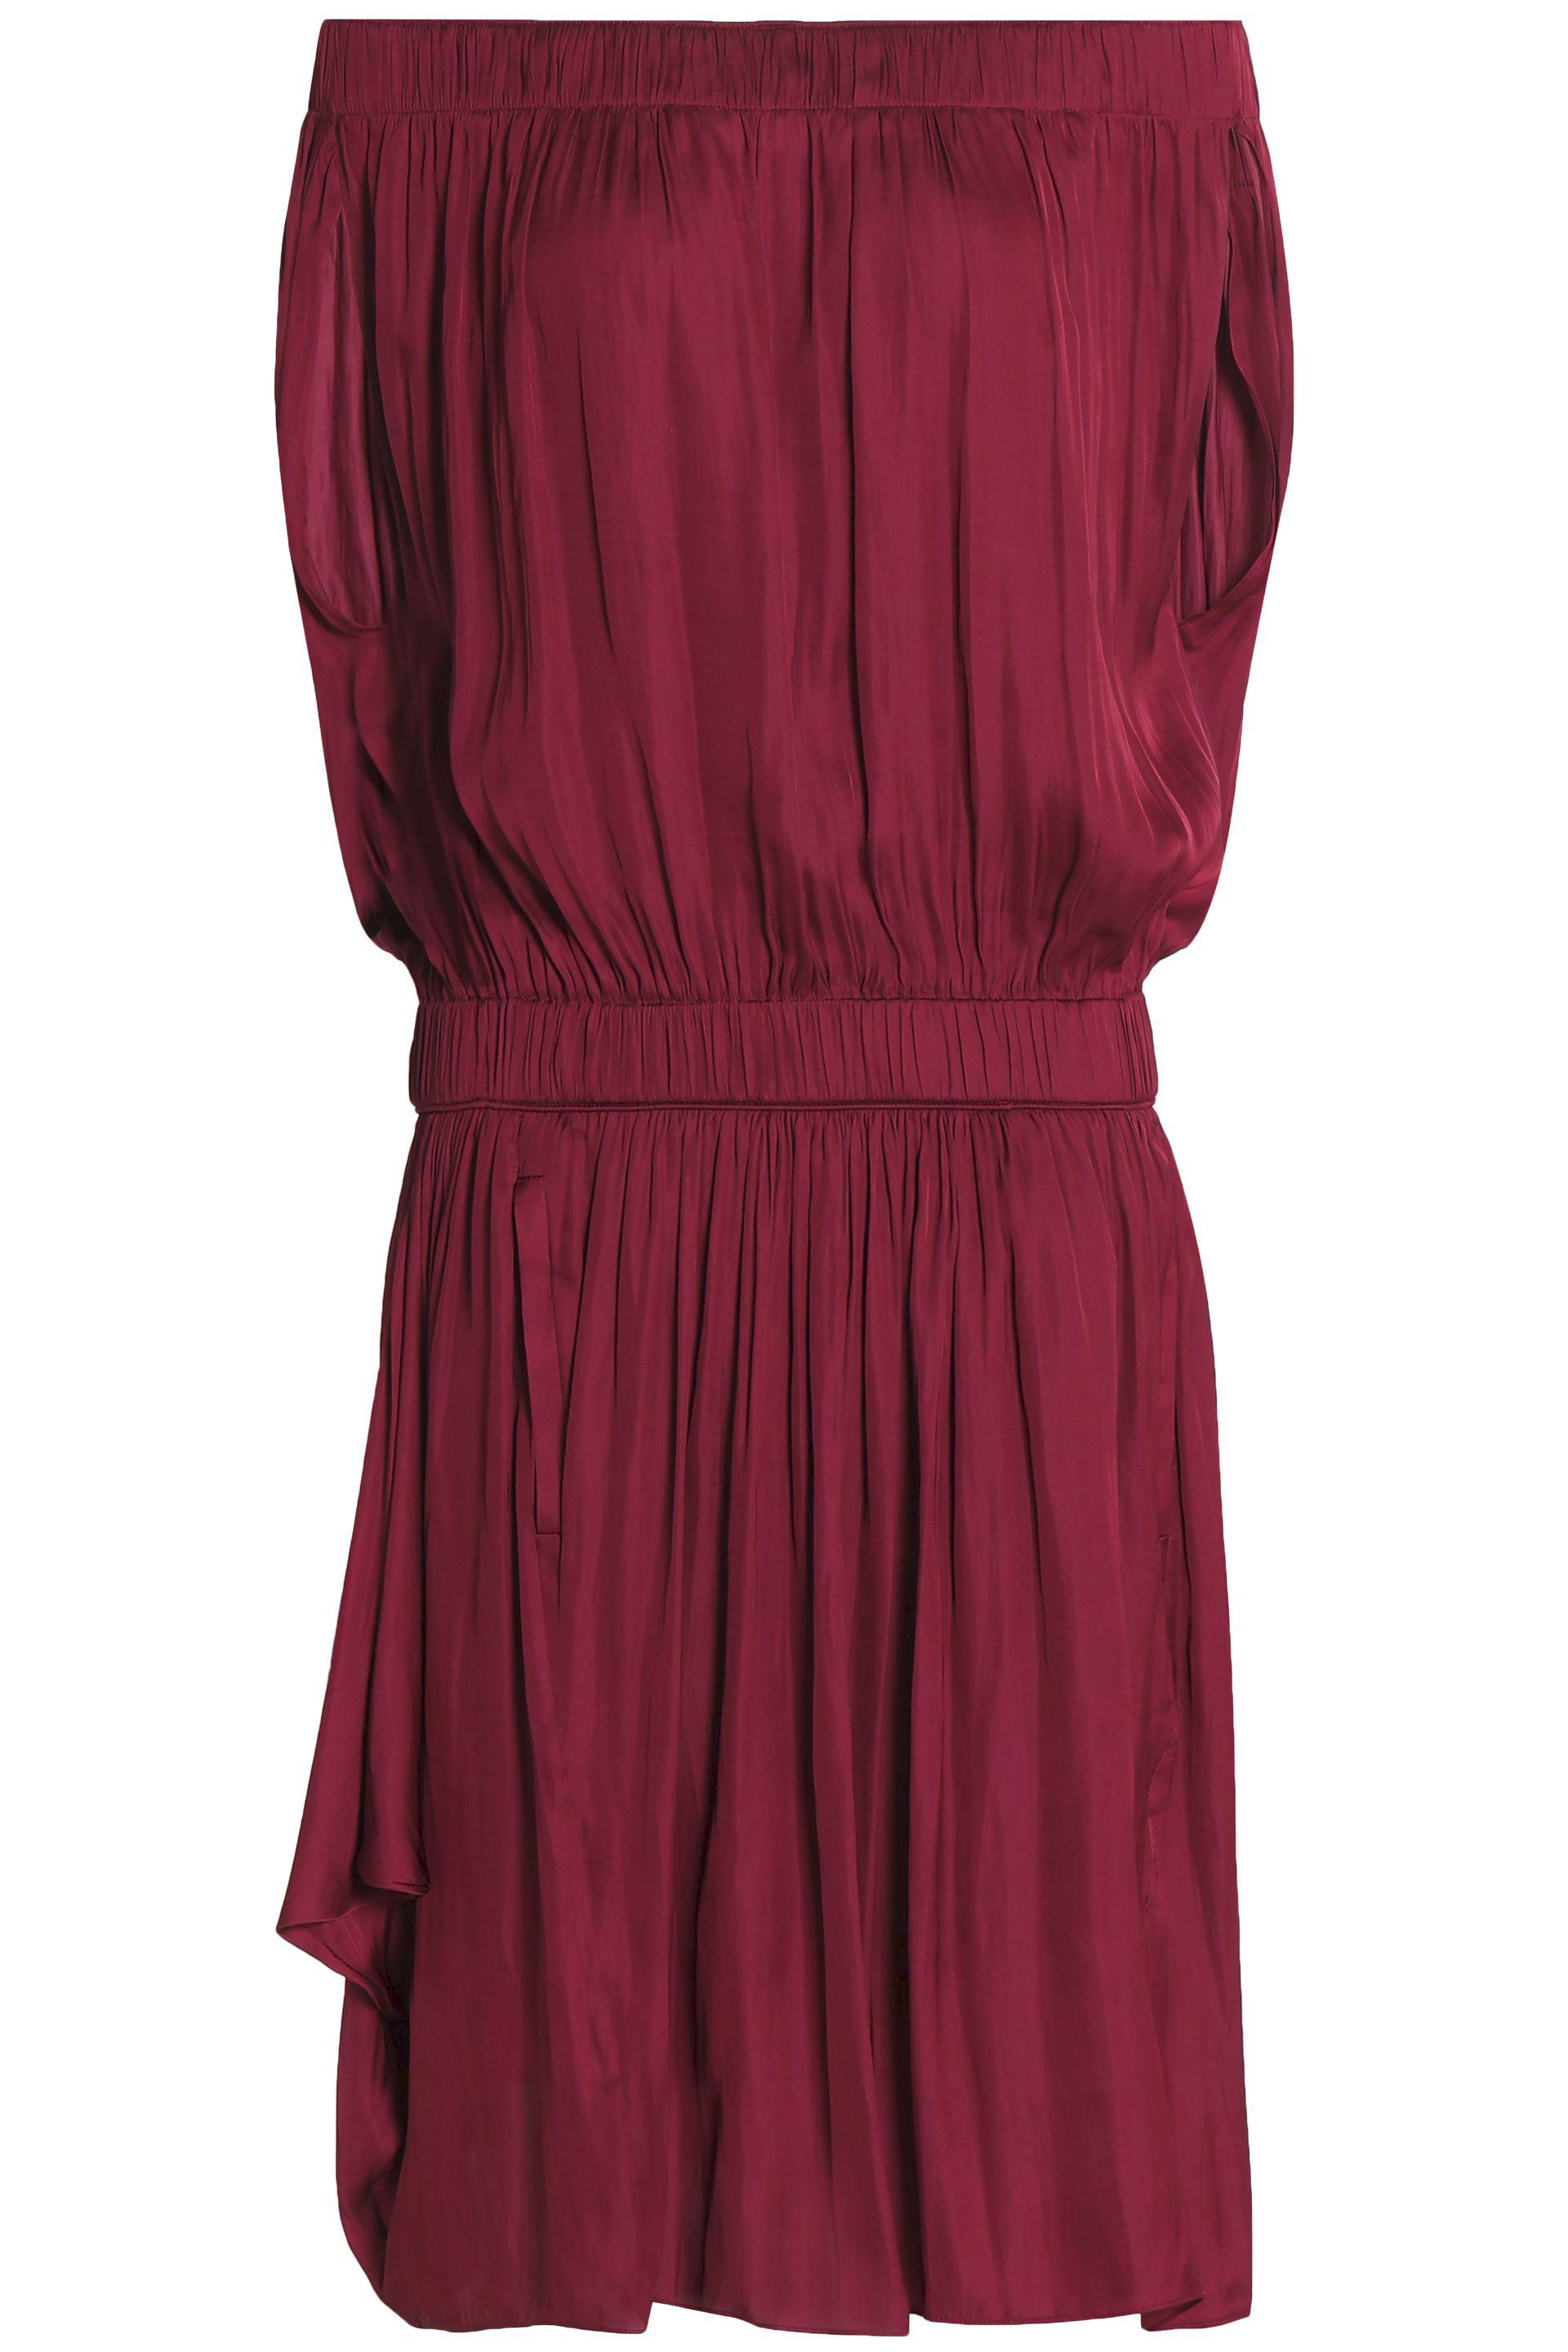 Cheap Sale Footaction Clearance Best Wholesale Halston Heritage Woman Off-the-shoulder Gathered Sateen Dress Merlot Size XL Halston Heritage New And Fashion Shopping Discounts Online LhH0PRn